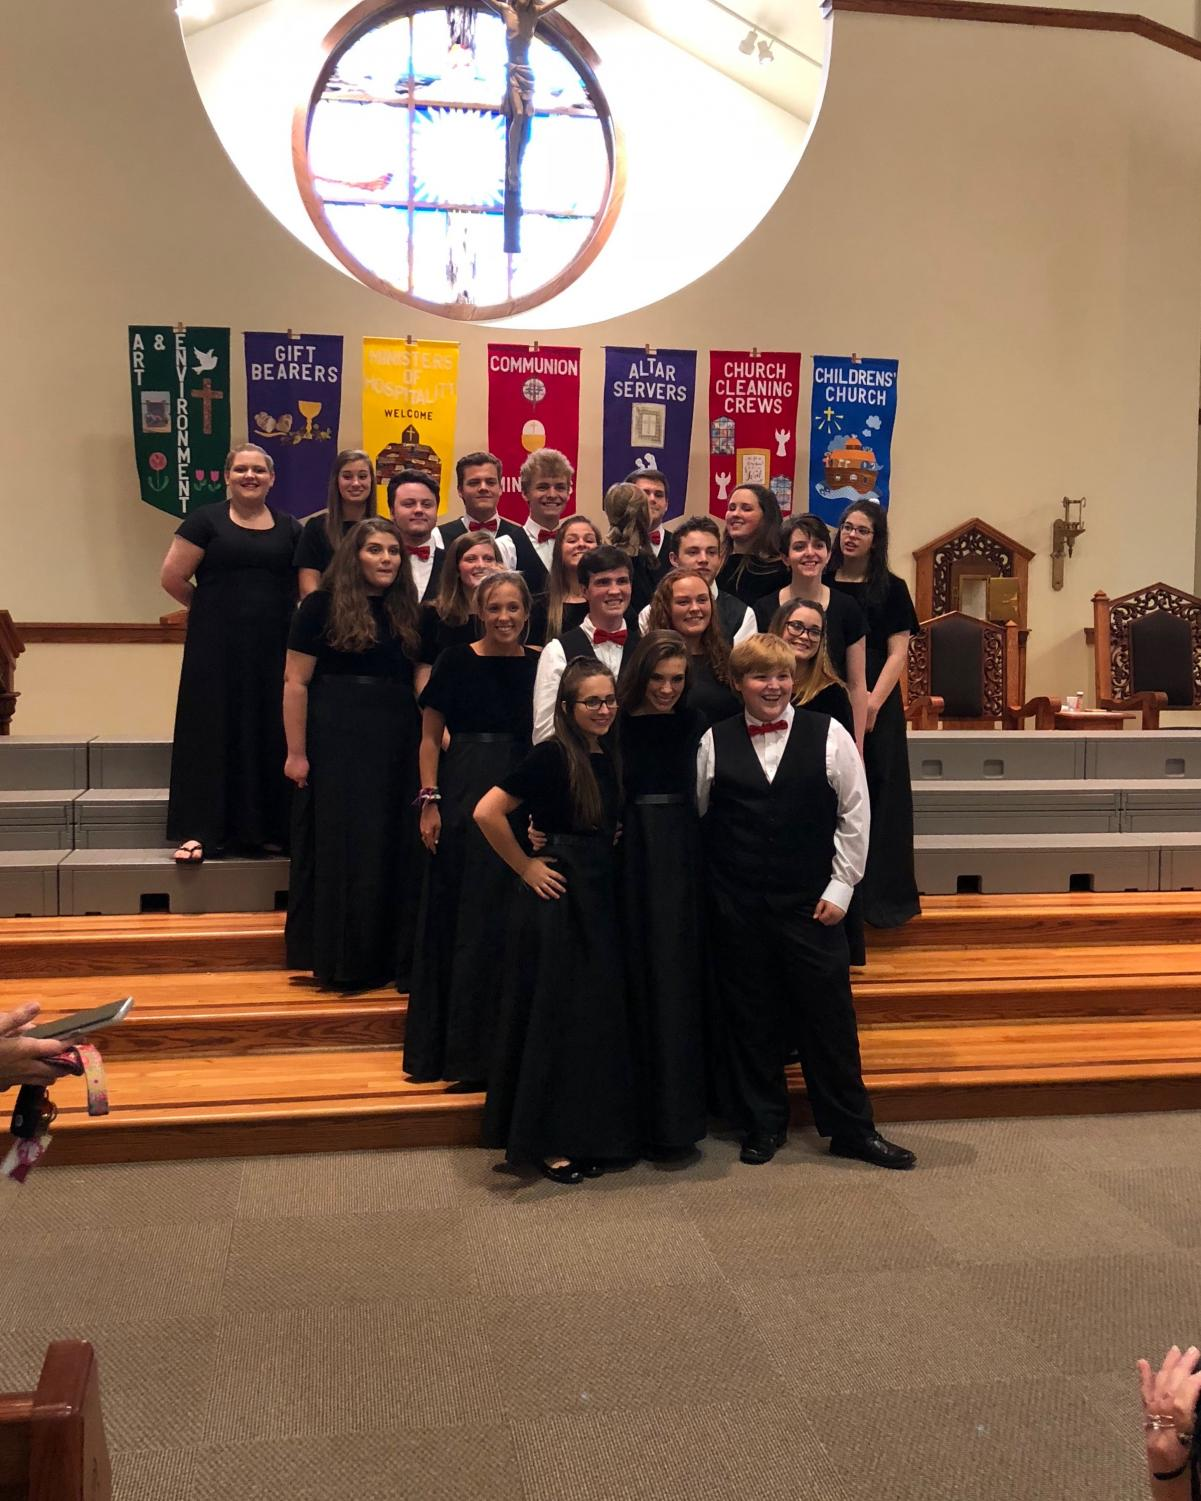 Advanced choir was one group to sing in the concert. They sung several songs, and it seemed most were happy with how the event went.